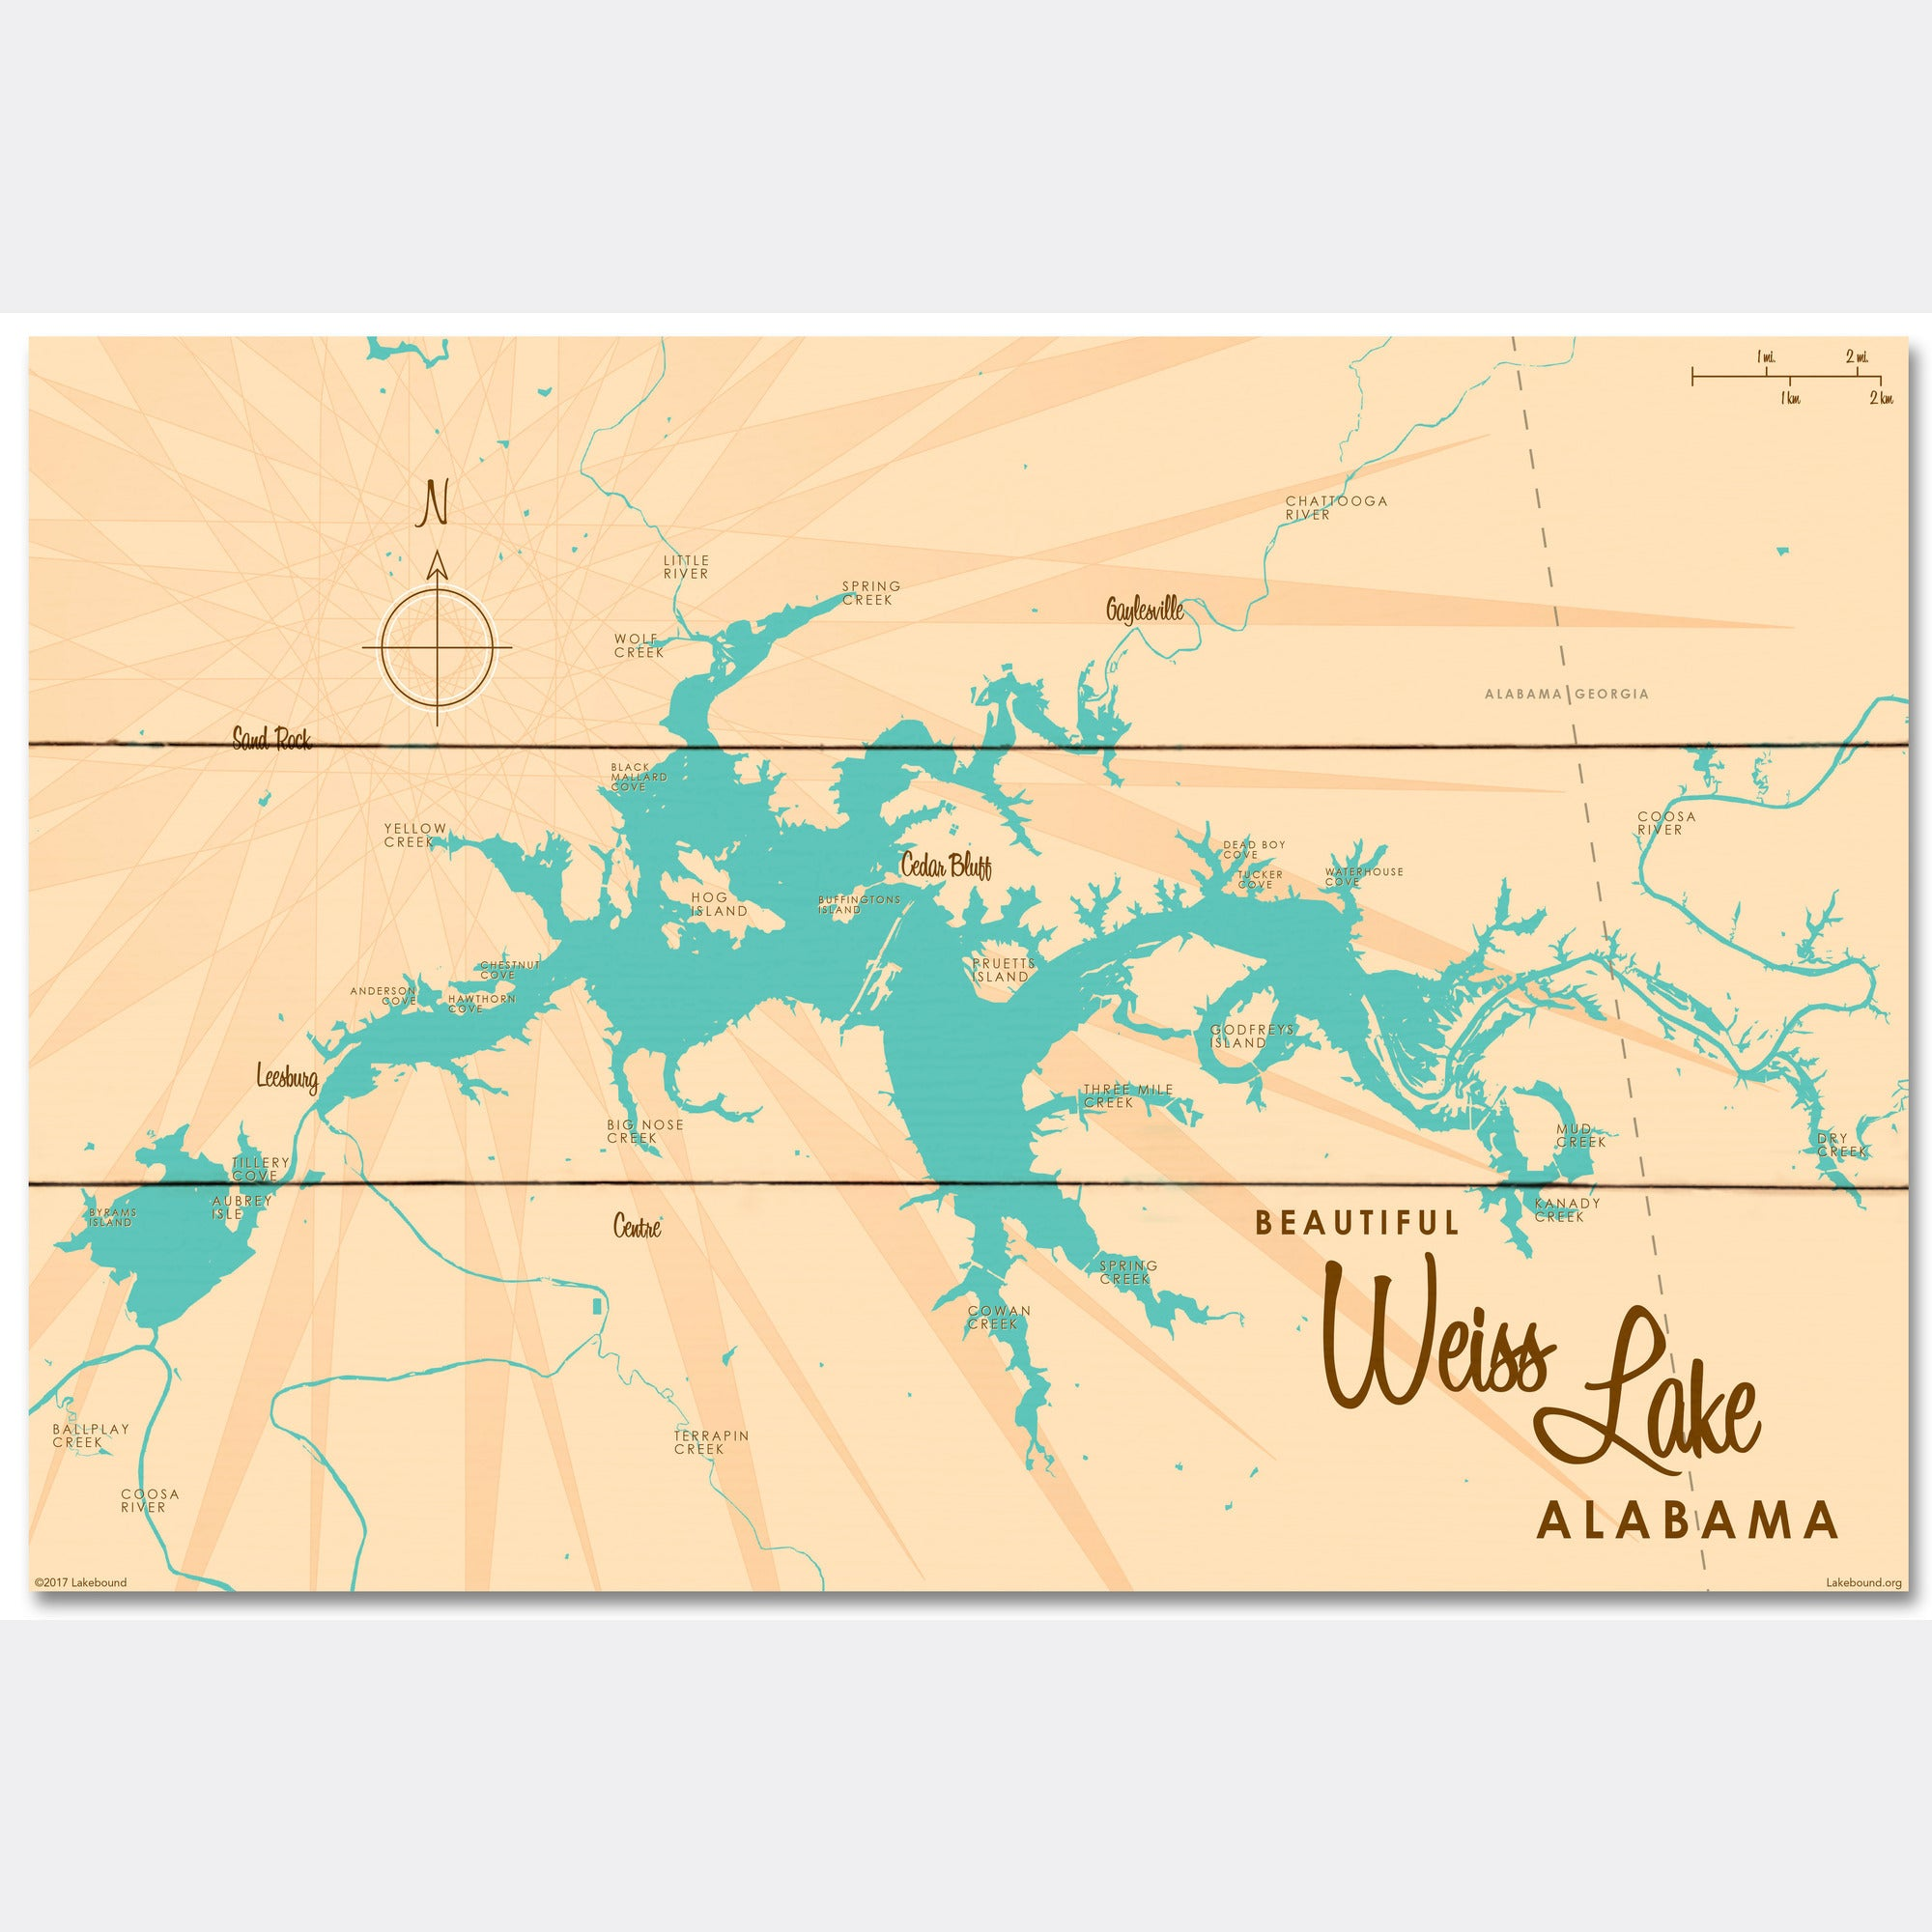 Weiss Lake Alabama, Wood Sign Map Art on map of sw georgia, map of northwest ga, map of southern montana, map tuscaloosa al, map of georgia geology, map of counties of georgia, map tennessee and alabama, county map georgia and alabama, map of georgia alabama line, map of lagrange georgia, map mississippi and alabama,